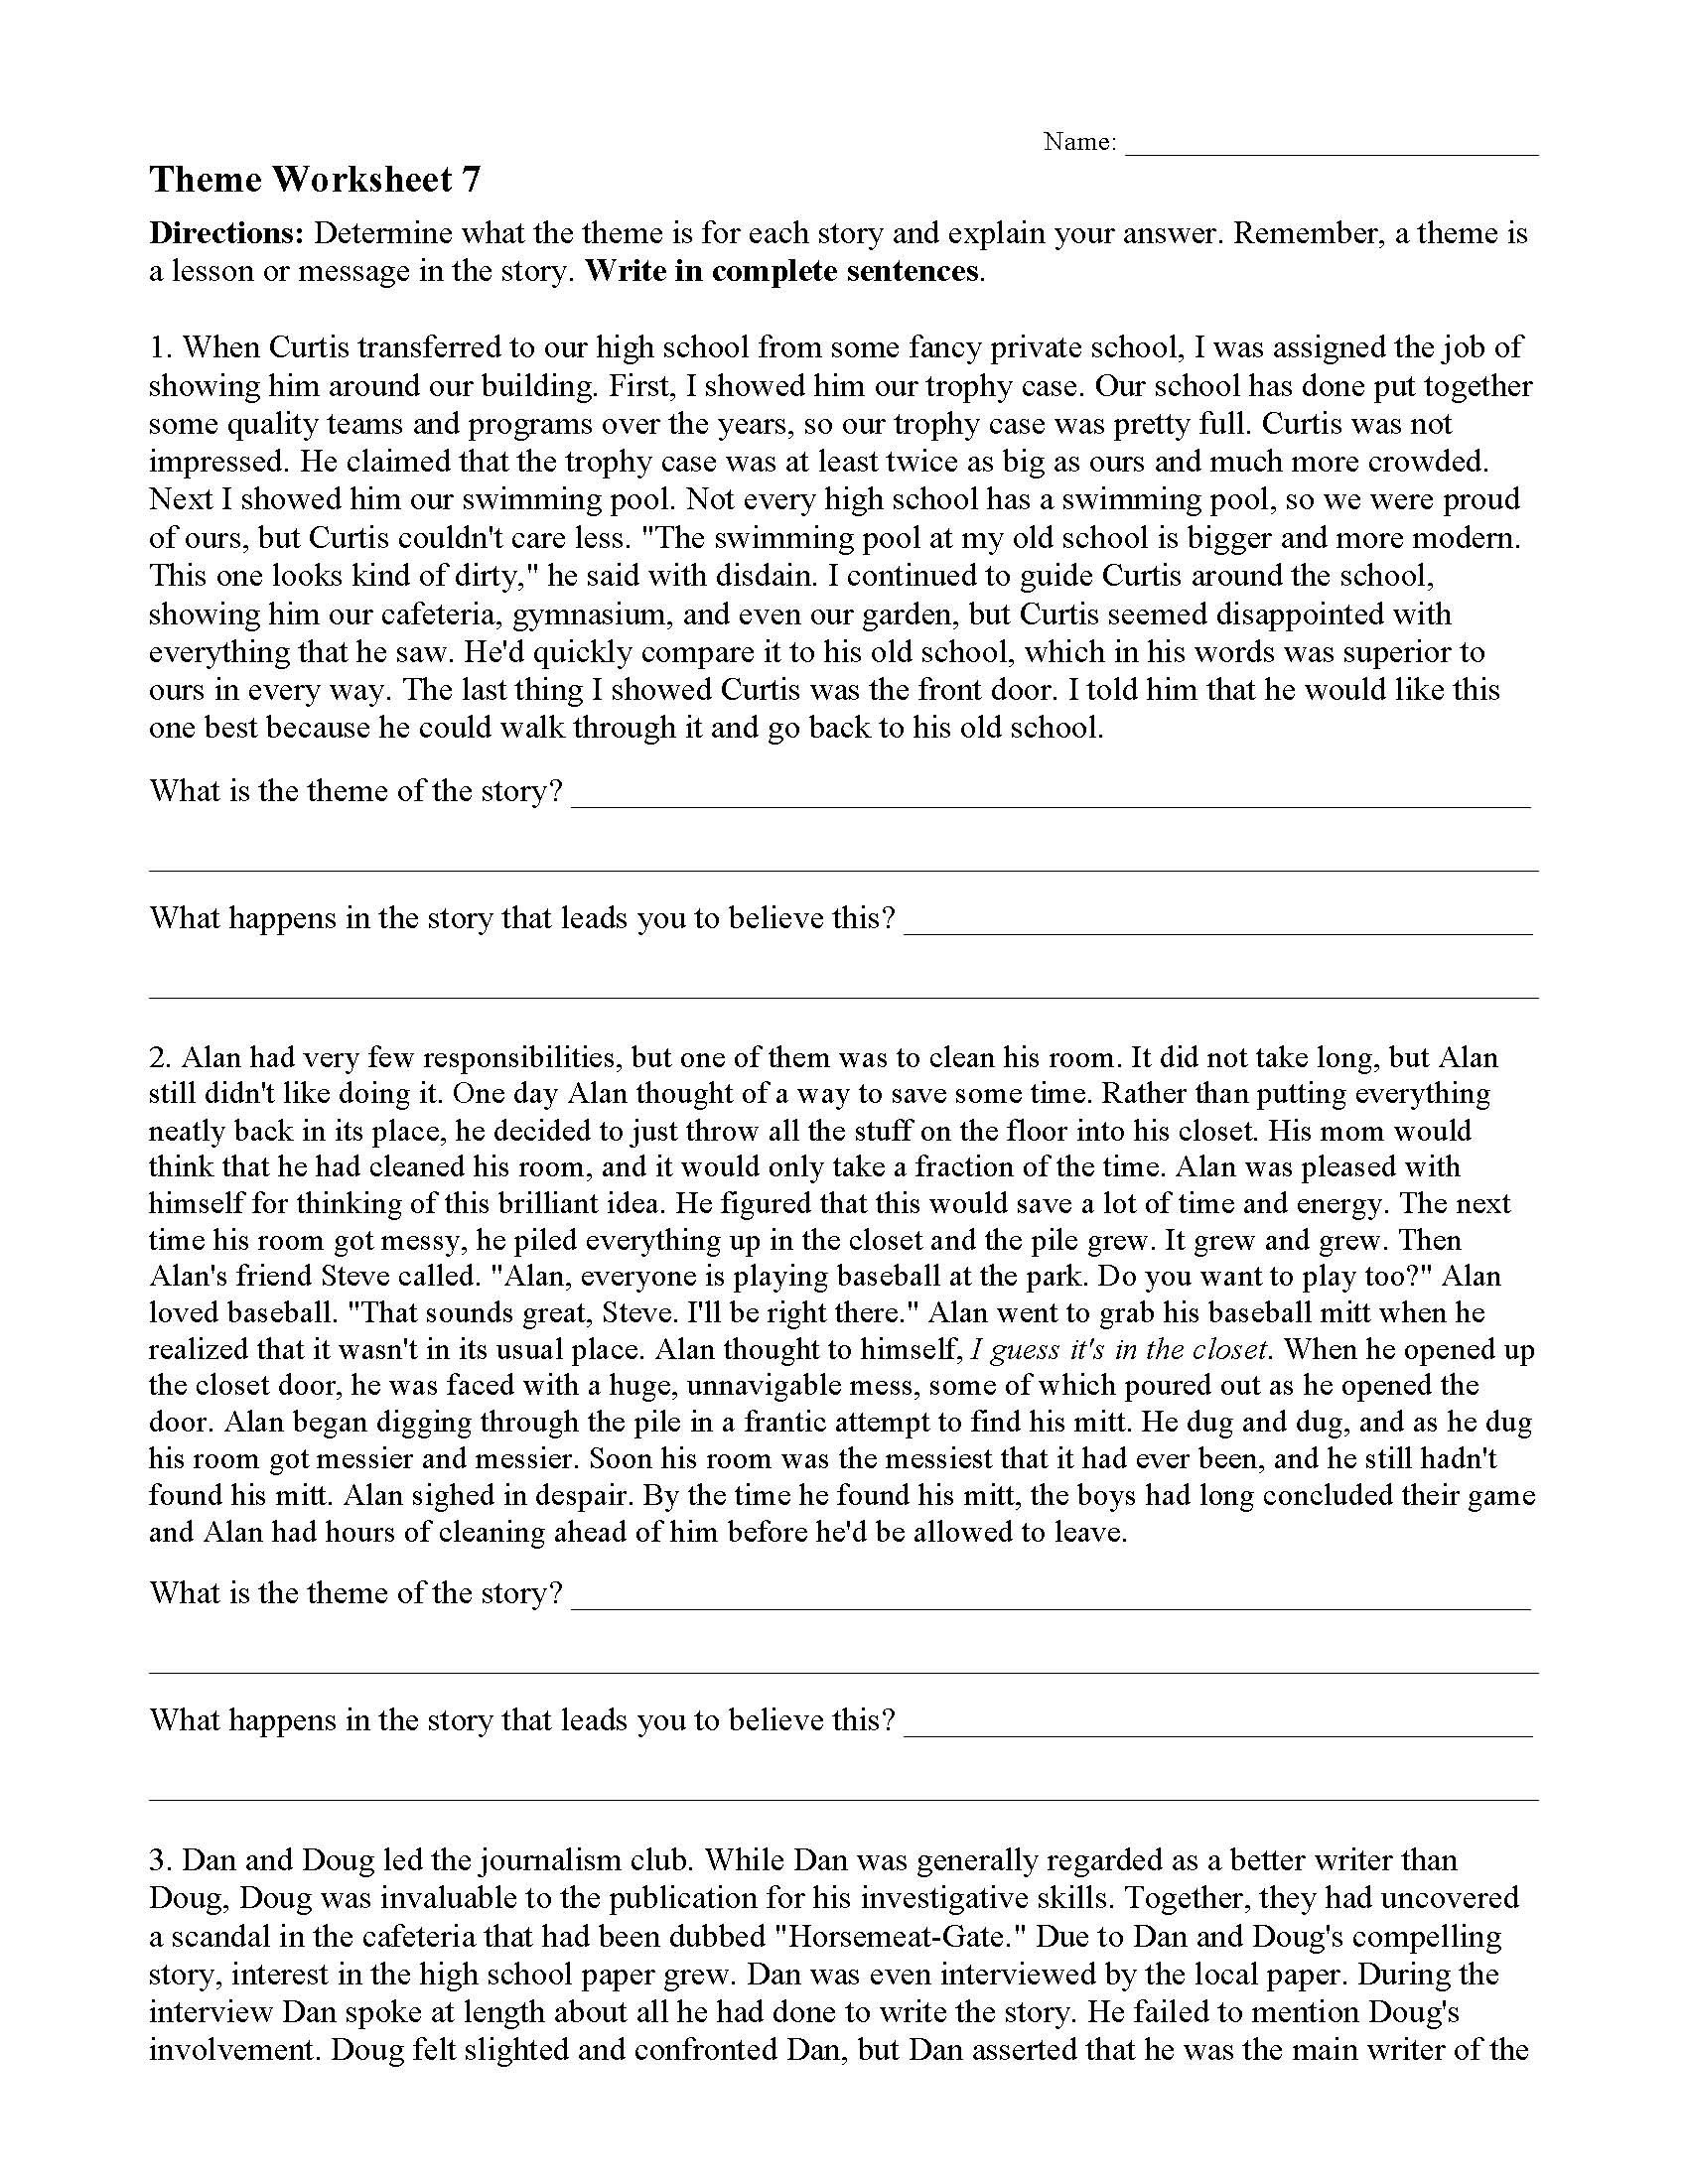 theme worksheet 07 01